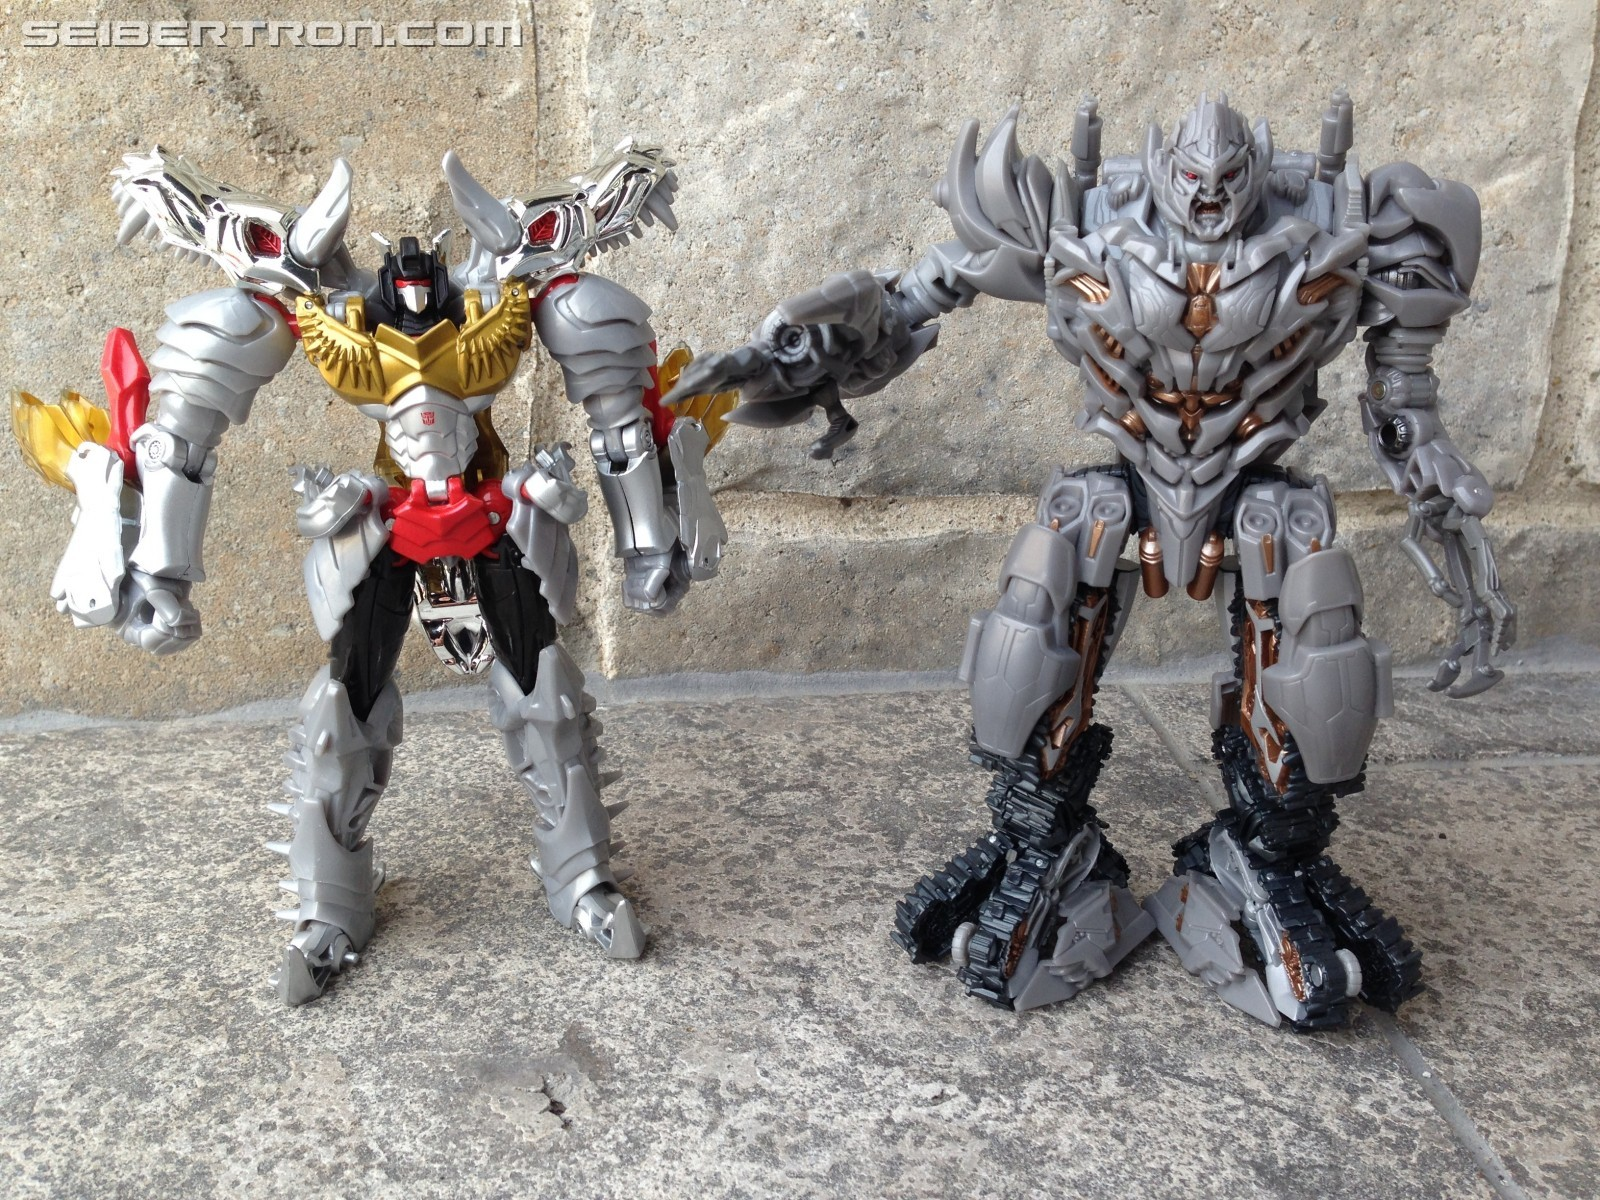 Pictorial Review for Transformers Studio Series Revenge of